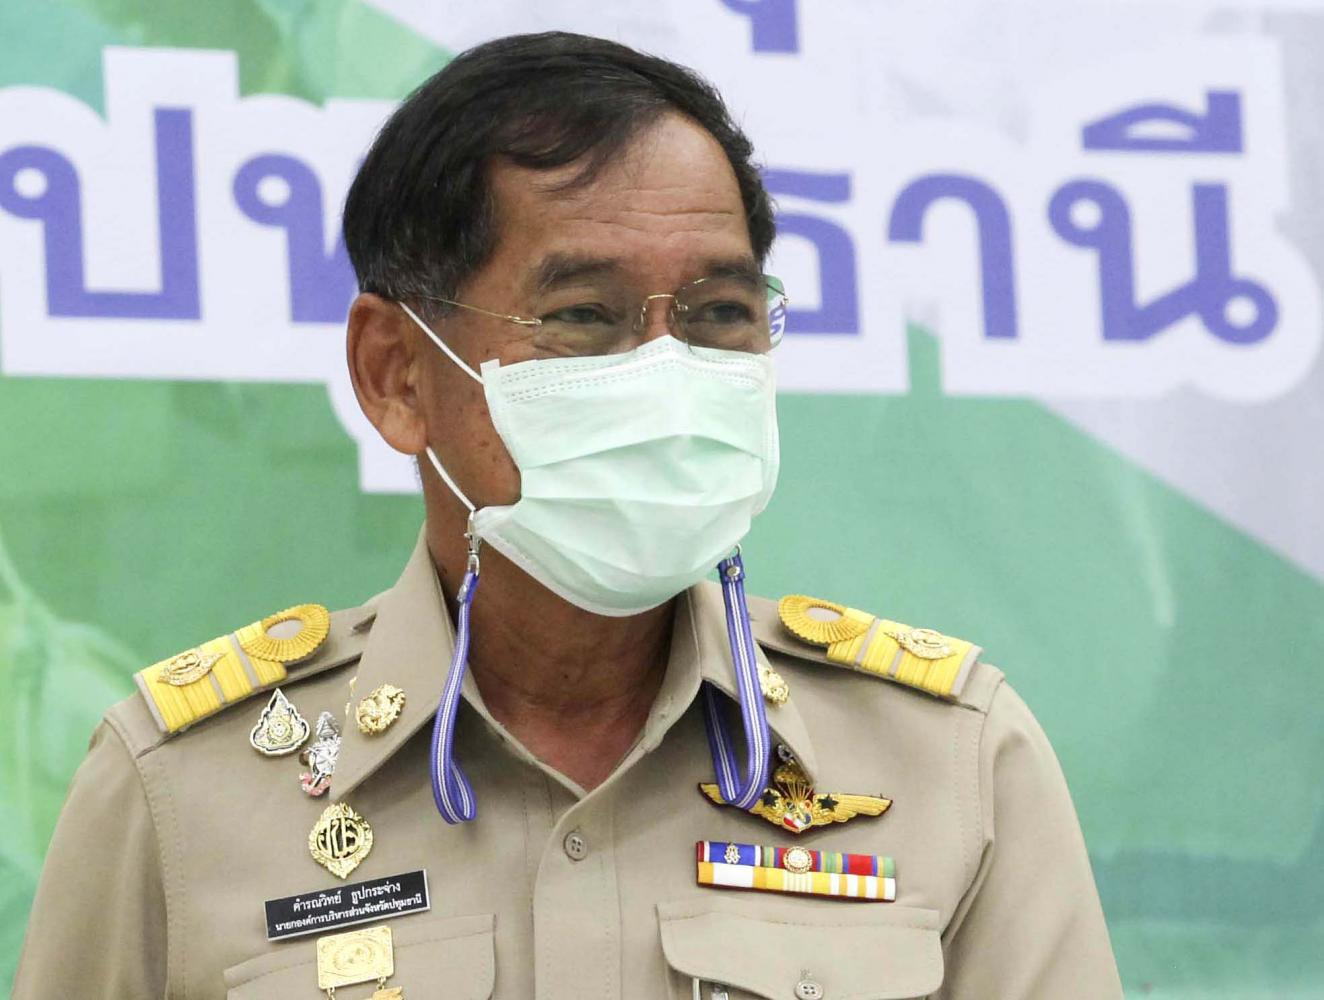 Pol Lt Gen Kamronwit Toopkrajang, chairman of Pathum Thani Provincial Administrative Organisation, is putting his negotiation skills to the test by helping secure the Sinopharm vaccine for other PAOs.(Photo by Pattarapong Chatpattarasill)